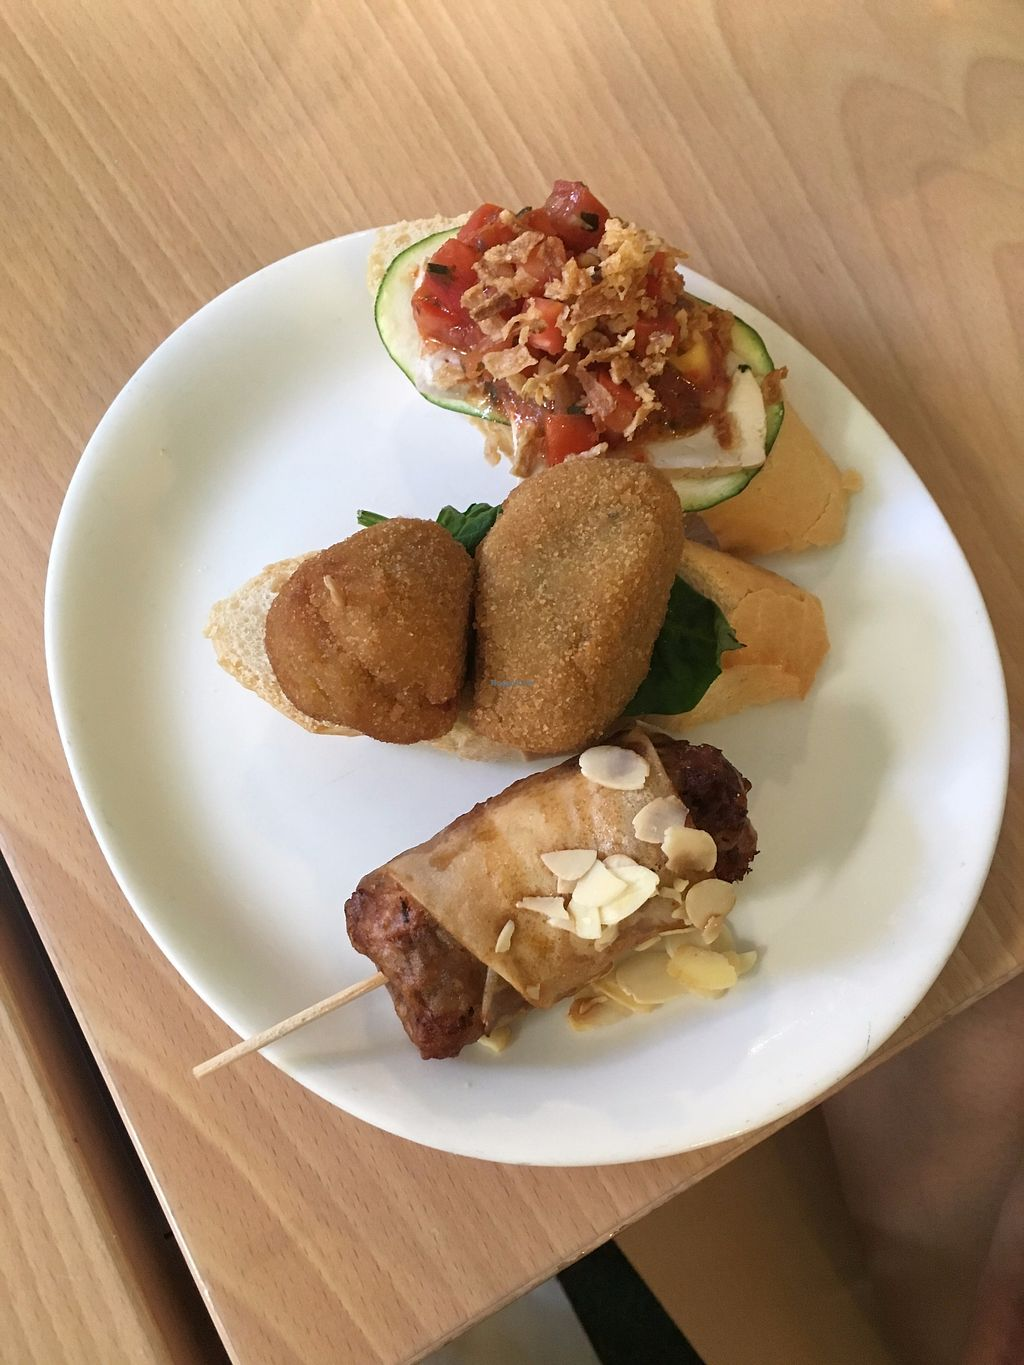 """Photo of Green Bistrot  by <a href=""""/members/profile/CrisyRivera"""">CrisyRivera</a> <br/>Different options of """"tapas"""" tofu and soy.  <br/> November 11, 2017  - <a href='/contact/abuse/image/63559/324465'>Report</a>"""